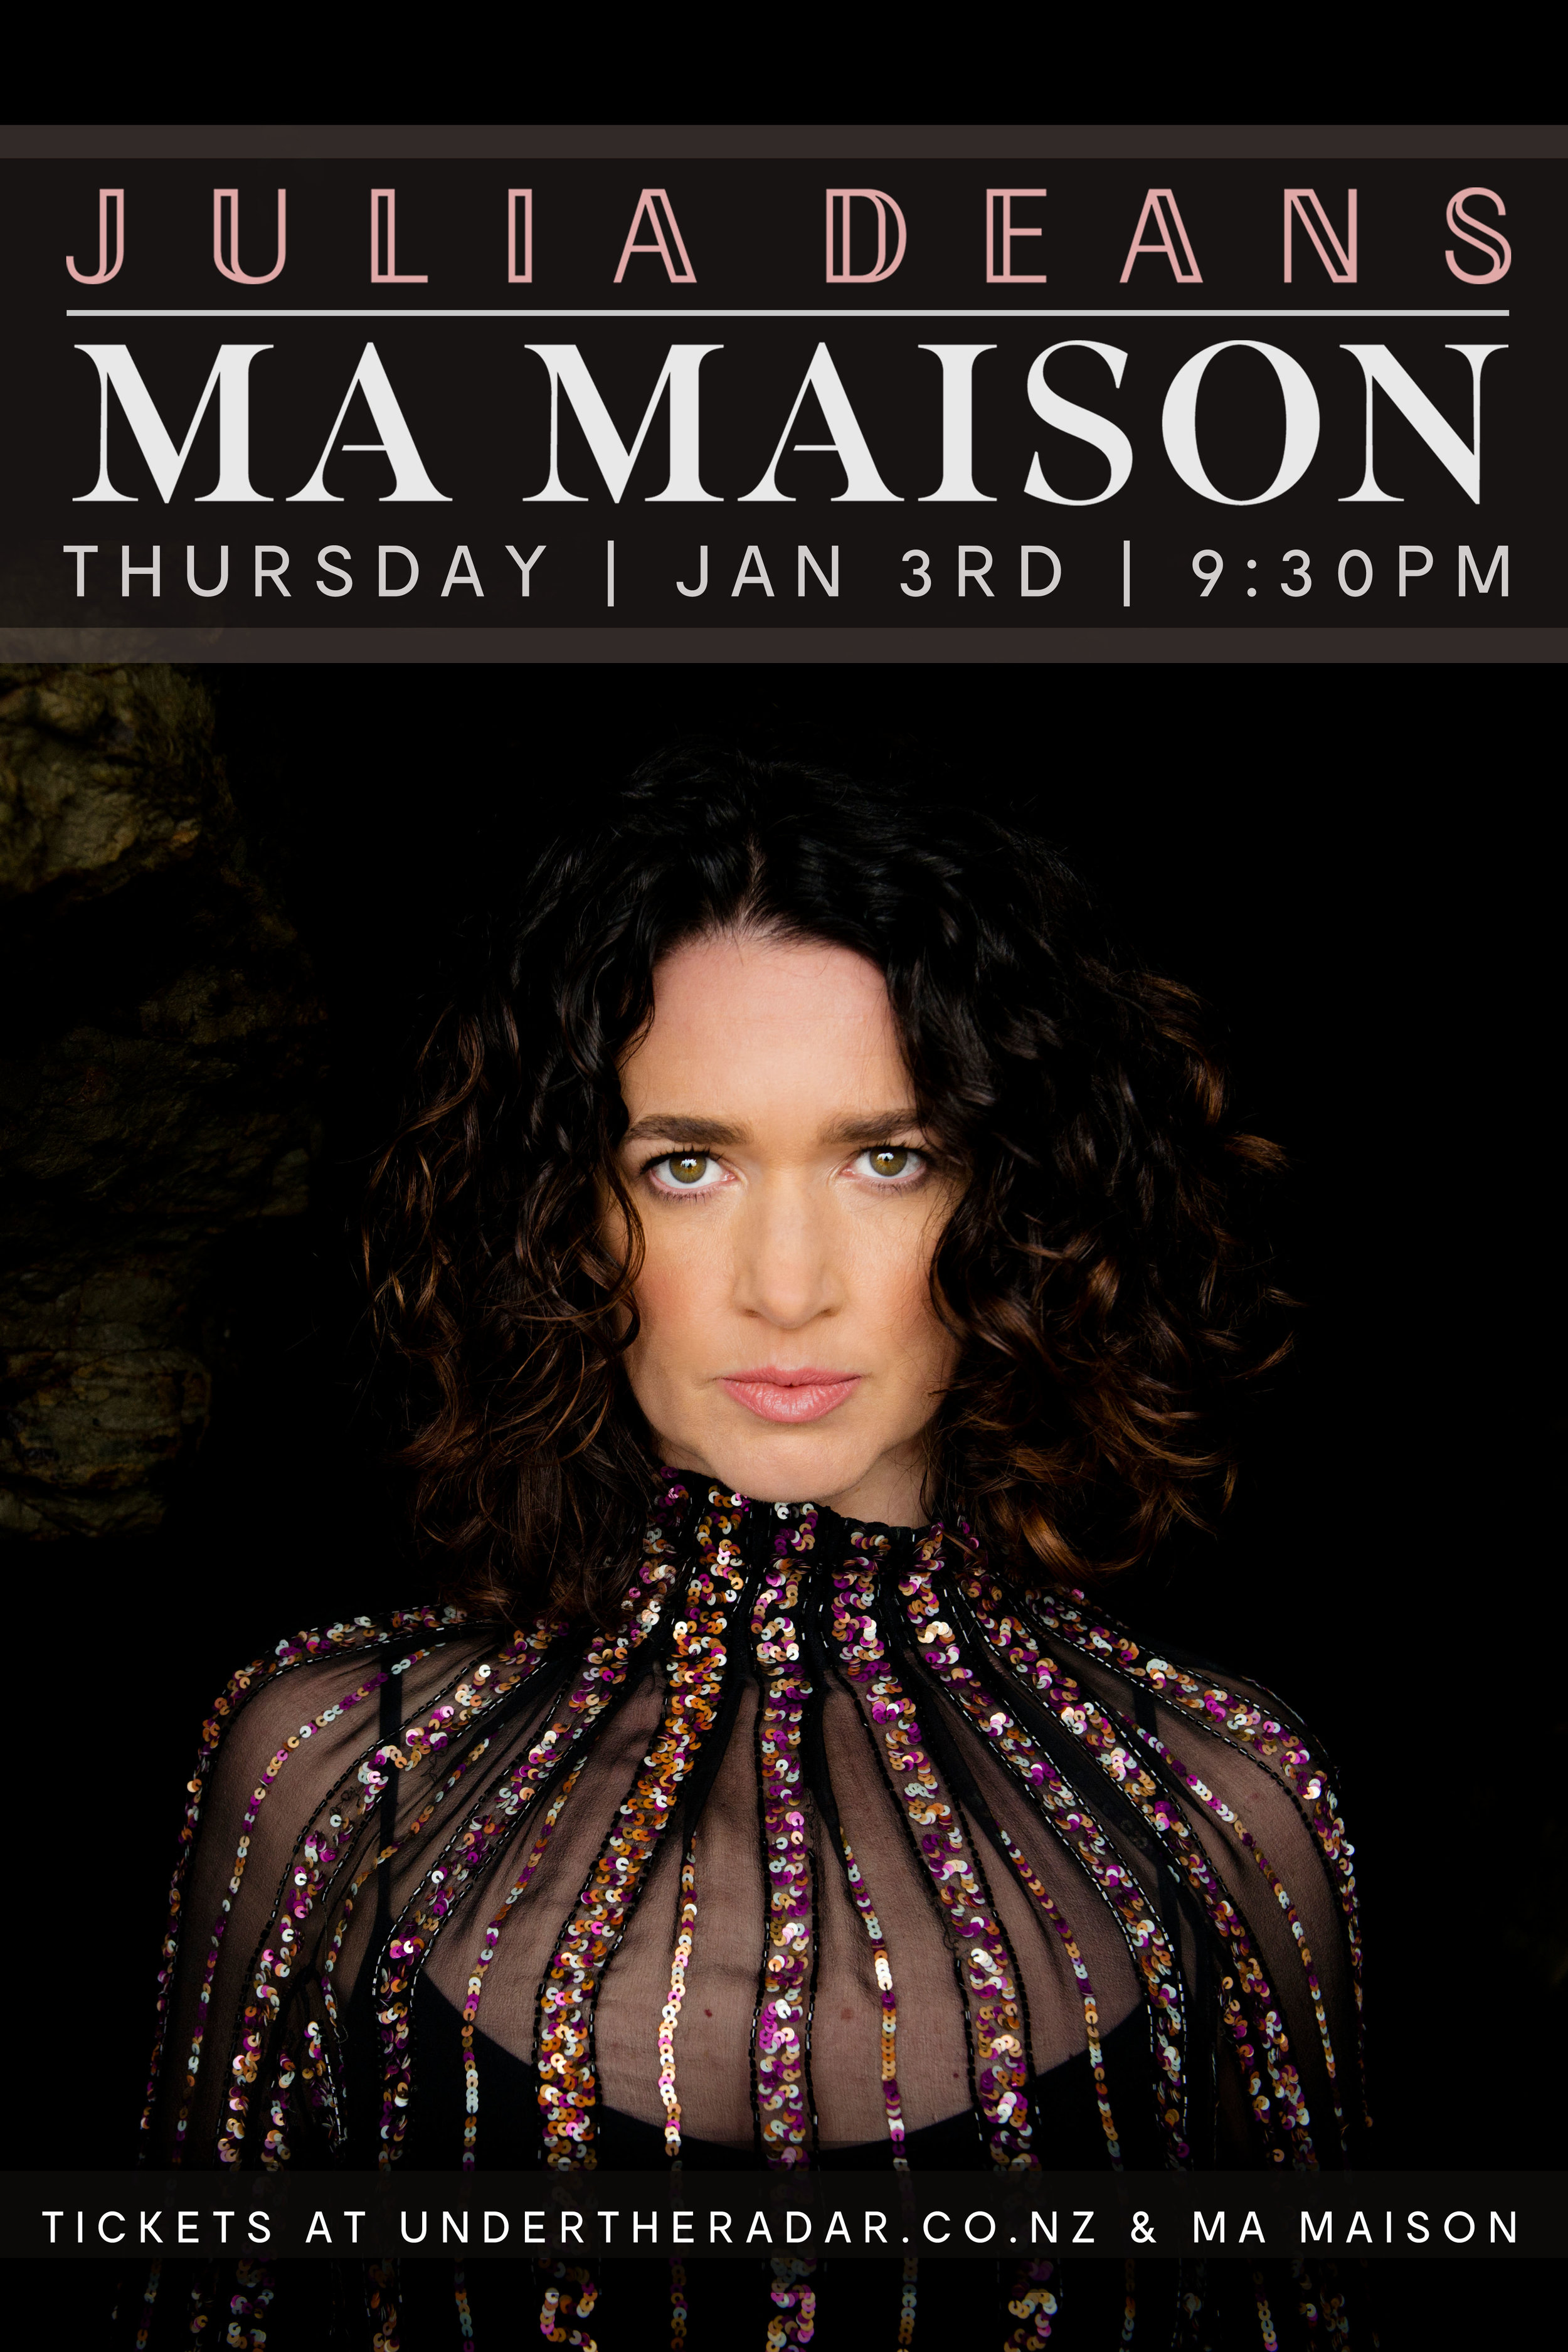 Julia and the team at  Ma Maison Restaurant & Bar  invite you to ease into the first weekend of 2019 with an evening of music & culinary delights.  Having recently toured with full band to celebrate the release of her critically acclaimed sophomore album, Deans will be performing solo – taking songs from the album and back catalogue, and stripping them back to their bones. Inspired by world events, friends, and family, We Light Fire is an album that examines both what it means to be human, and our spectrum of strength and vulnerability.  Don't miss this a chance to hear one of Aotearoa's finest vocalists & accomplished songwriters in one of Akaroa's hidden gems.  NB: Tickets strictly limited due to venue size. Doors officially start stamping at 9pm, but come early for a mean feed and to secure the best seats in the house!  Tickets available online from undertheradar.co.nz, or pop in to Ma Maison, 2 Rue Jolie, Akaroa. Enquiries: 03 304 7668